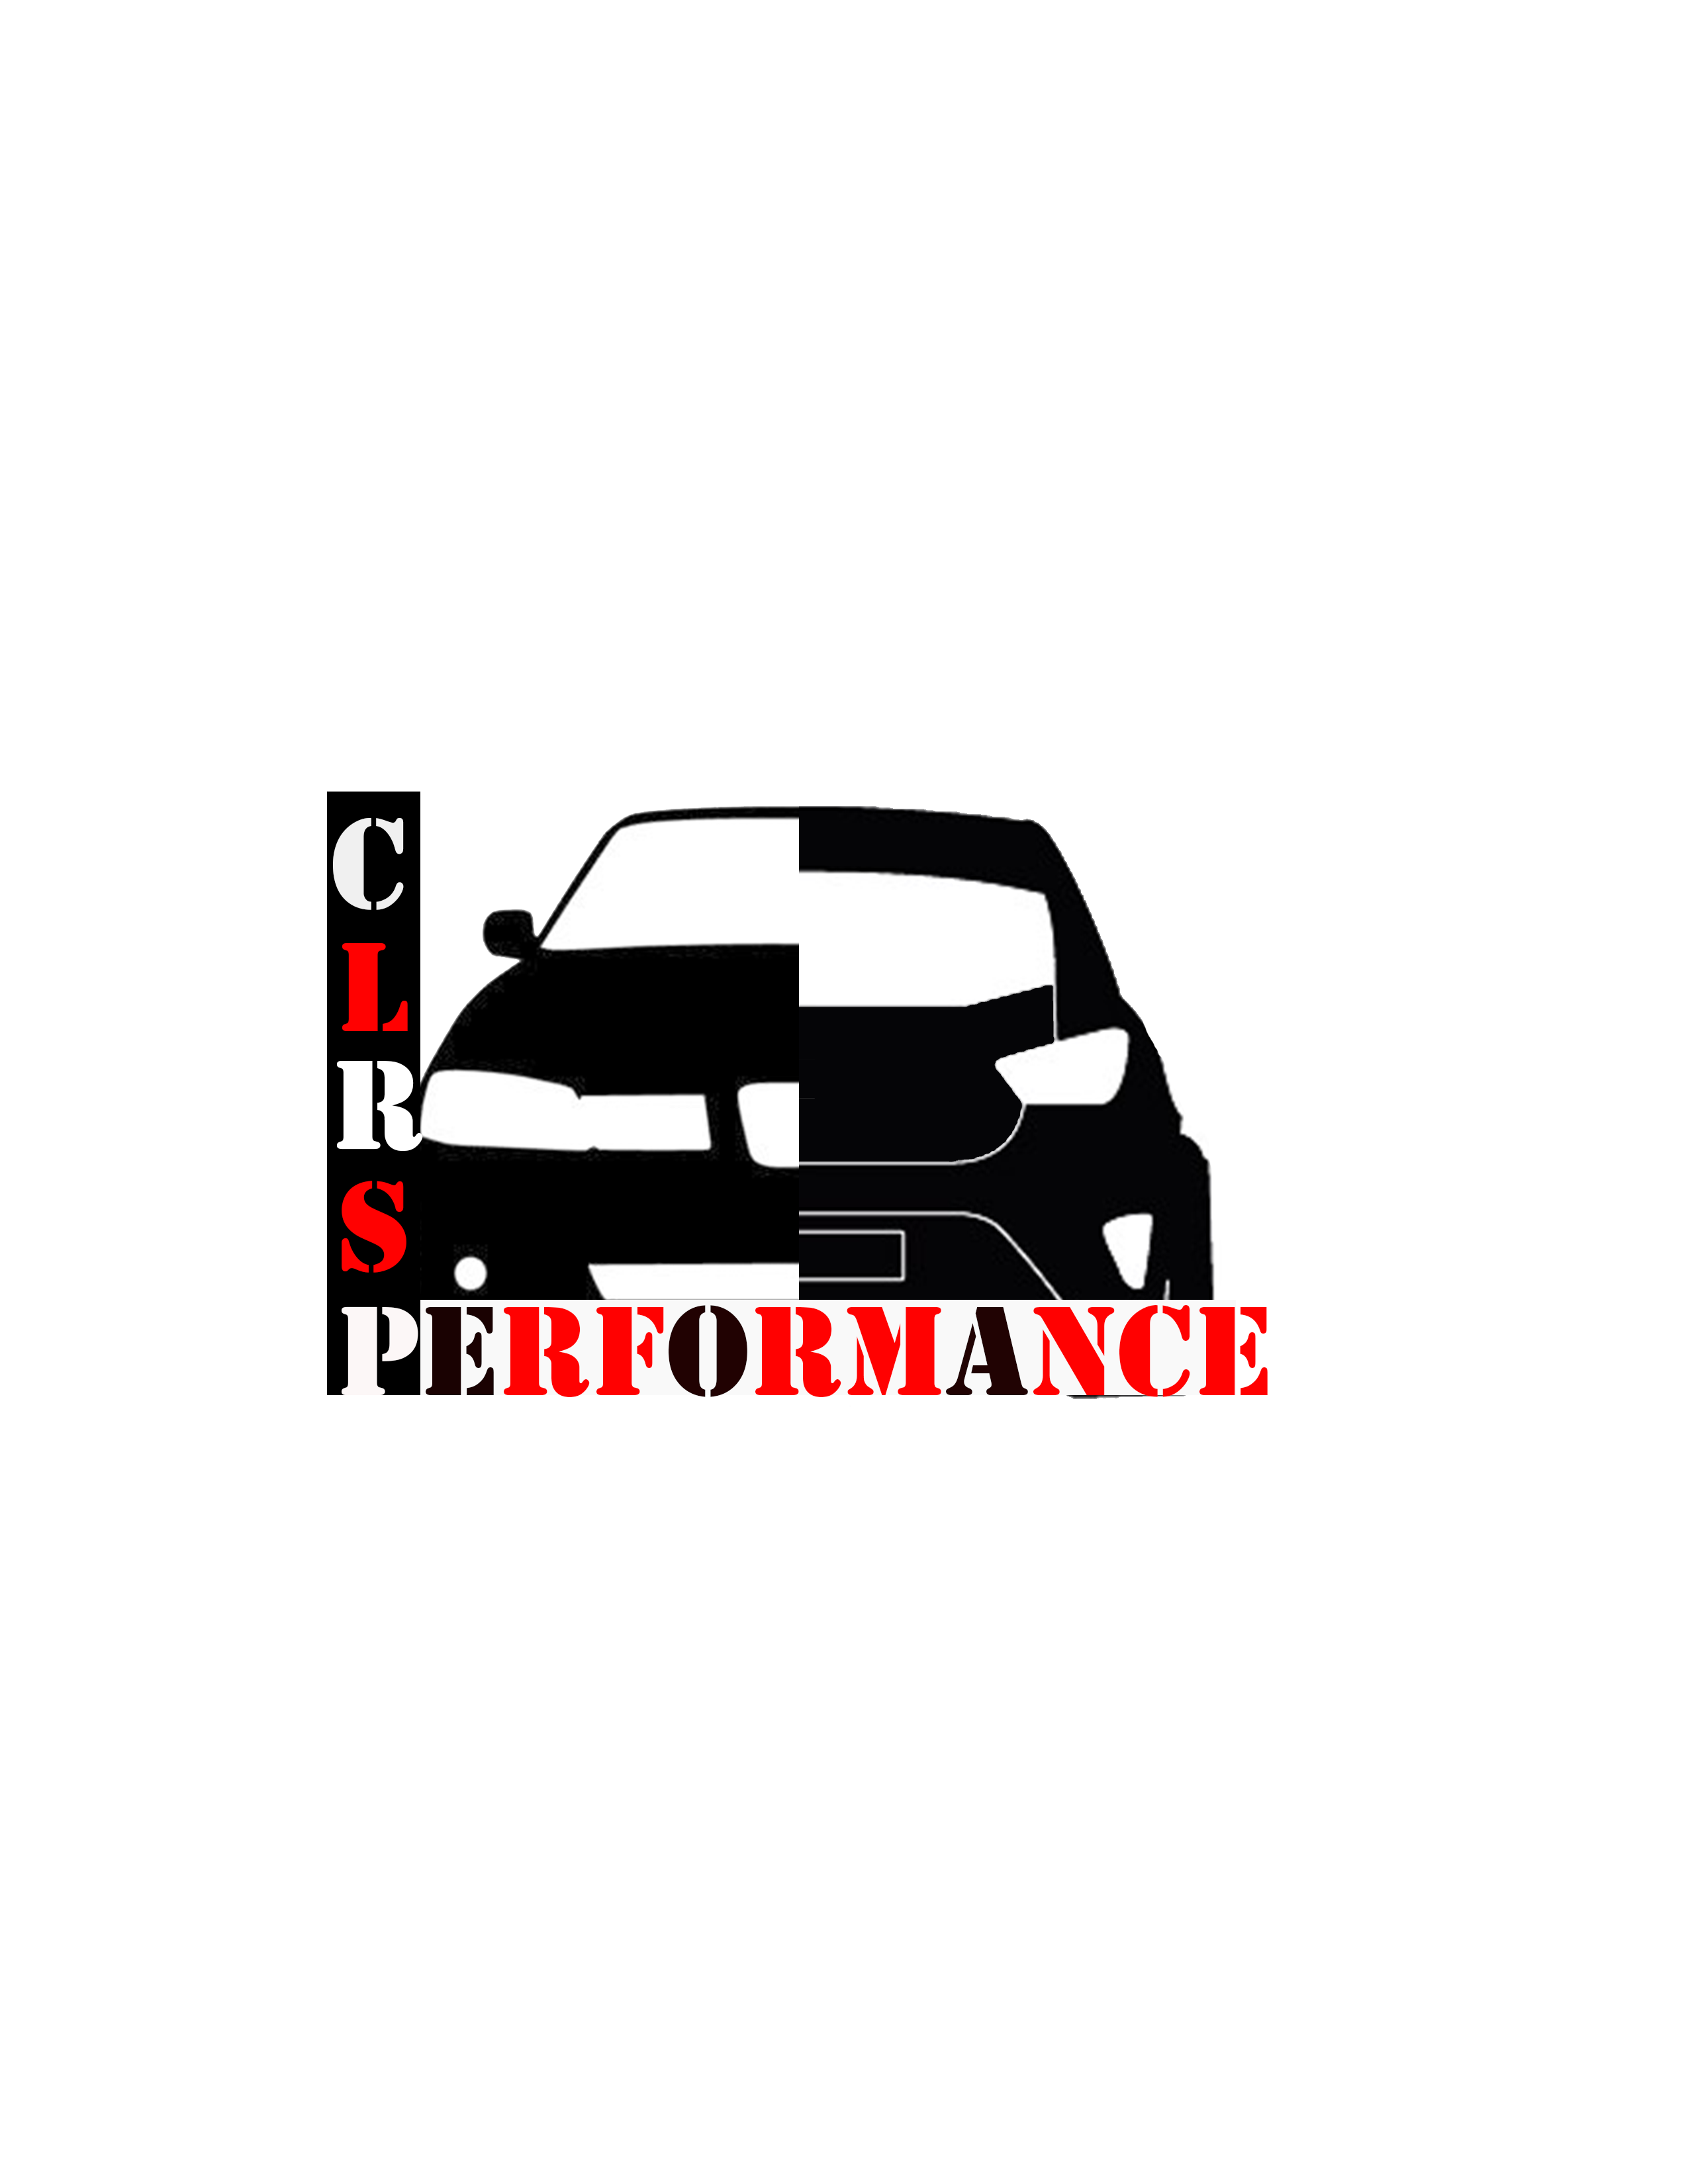 CLRS-PERFORMANCE